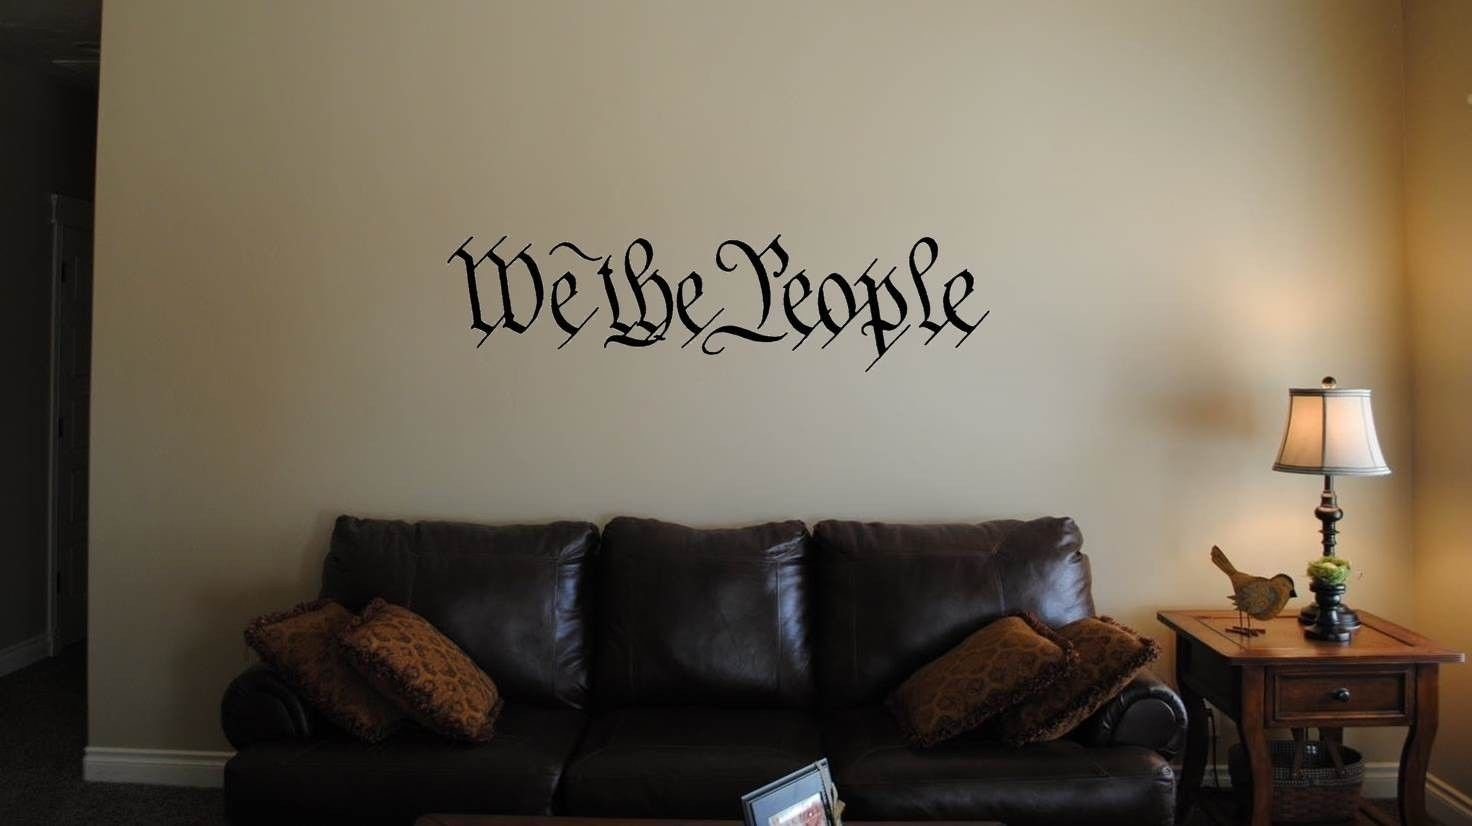 amazon com we the people wall decal sticker 39 inches x 10 inches amazon com we the people wall decal sticker 39 inches x 10 inches wall art automotive